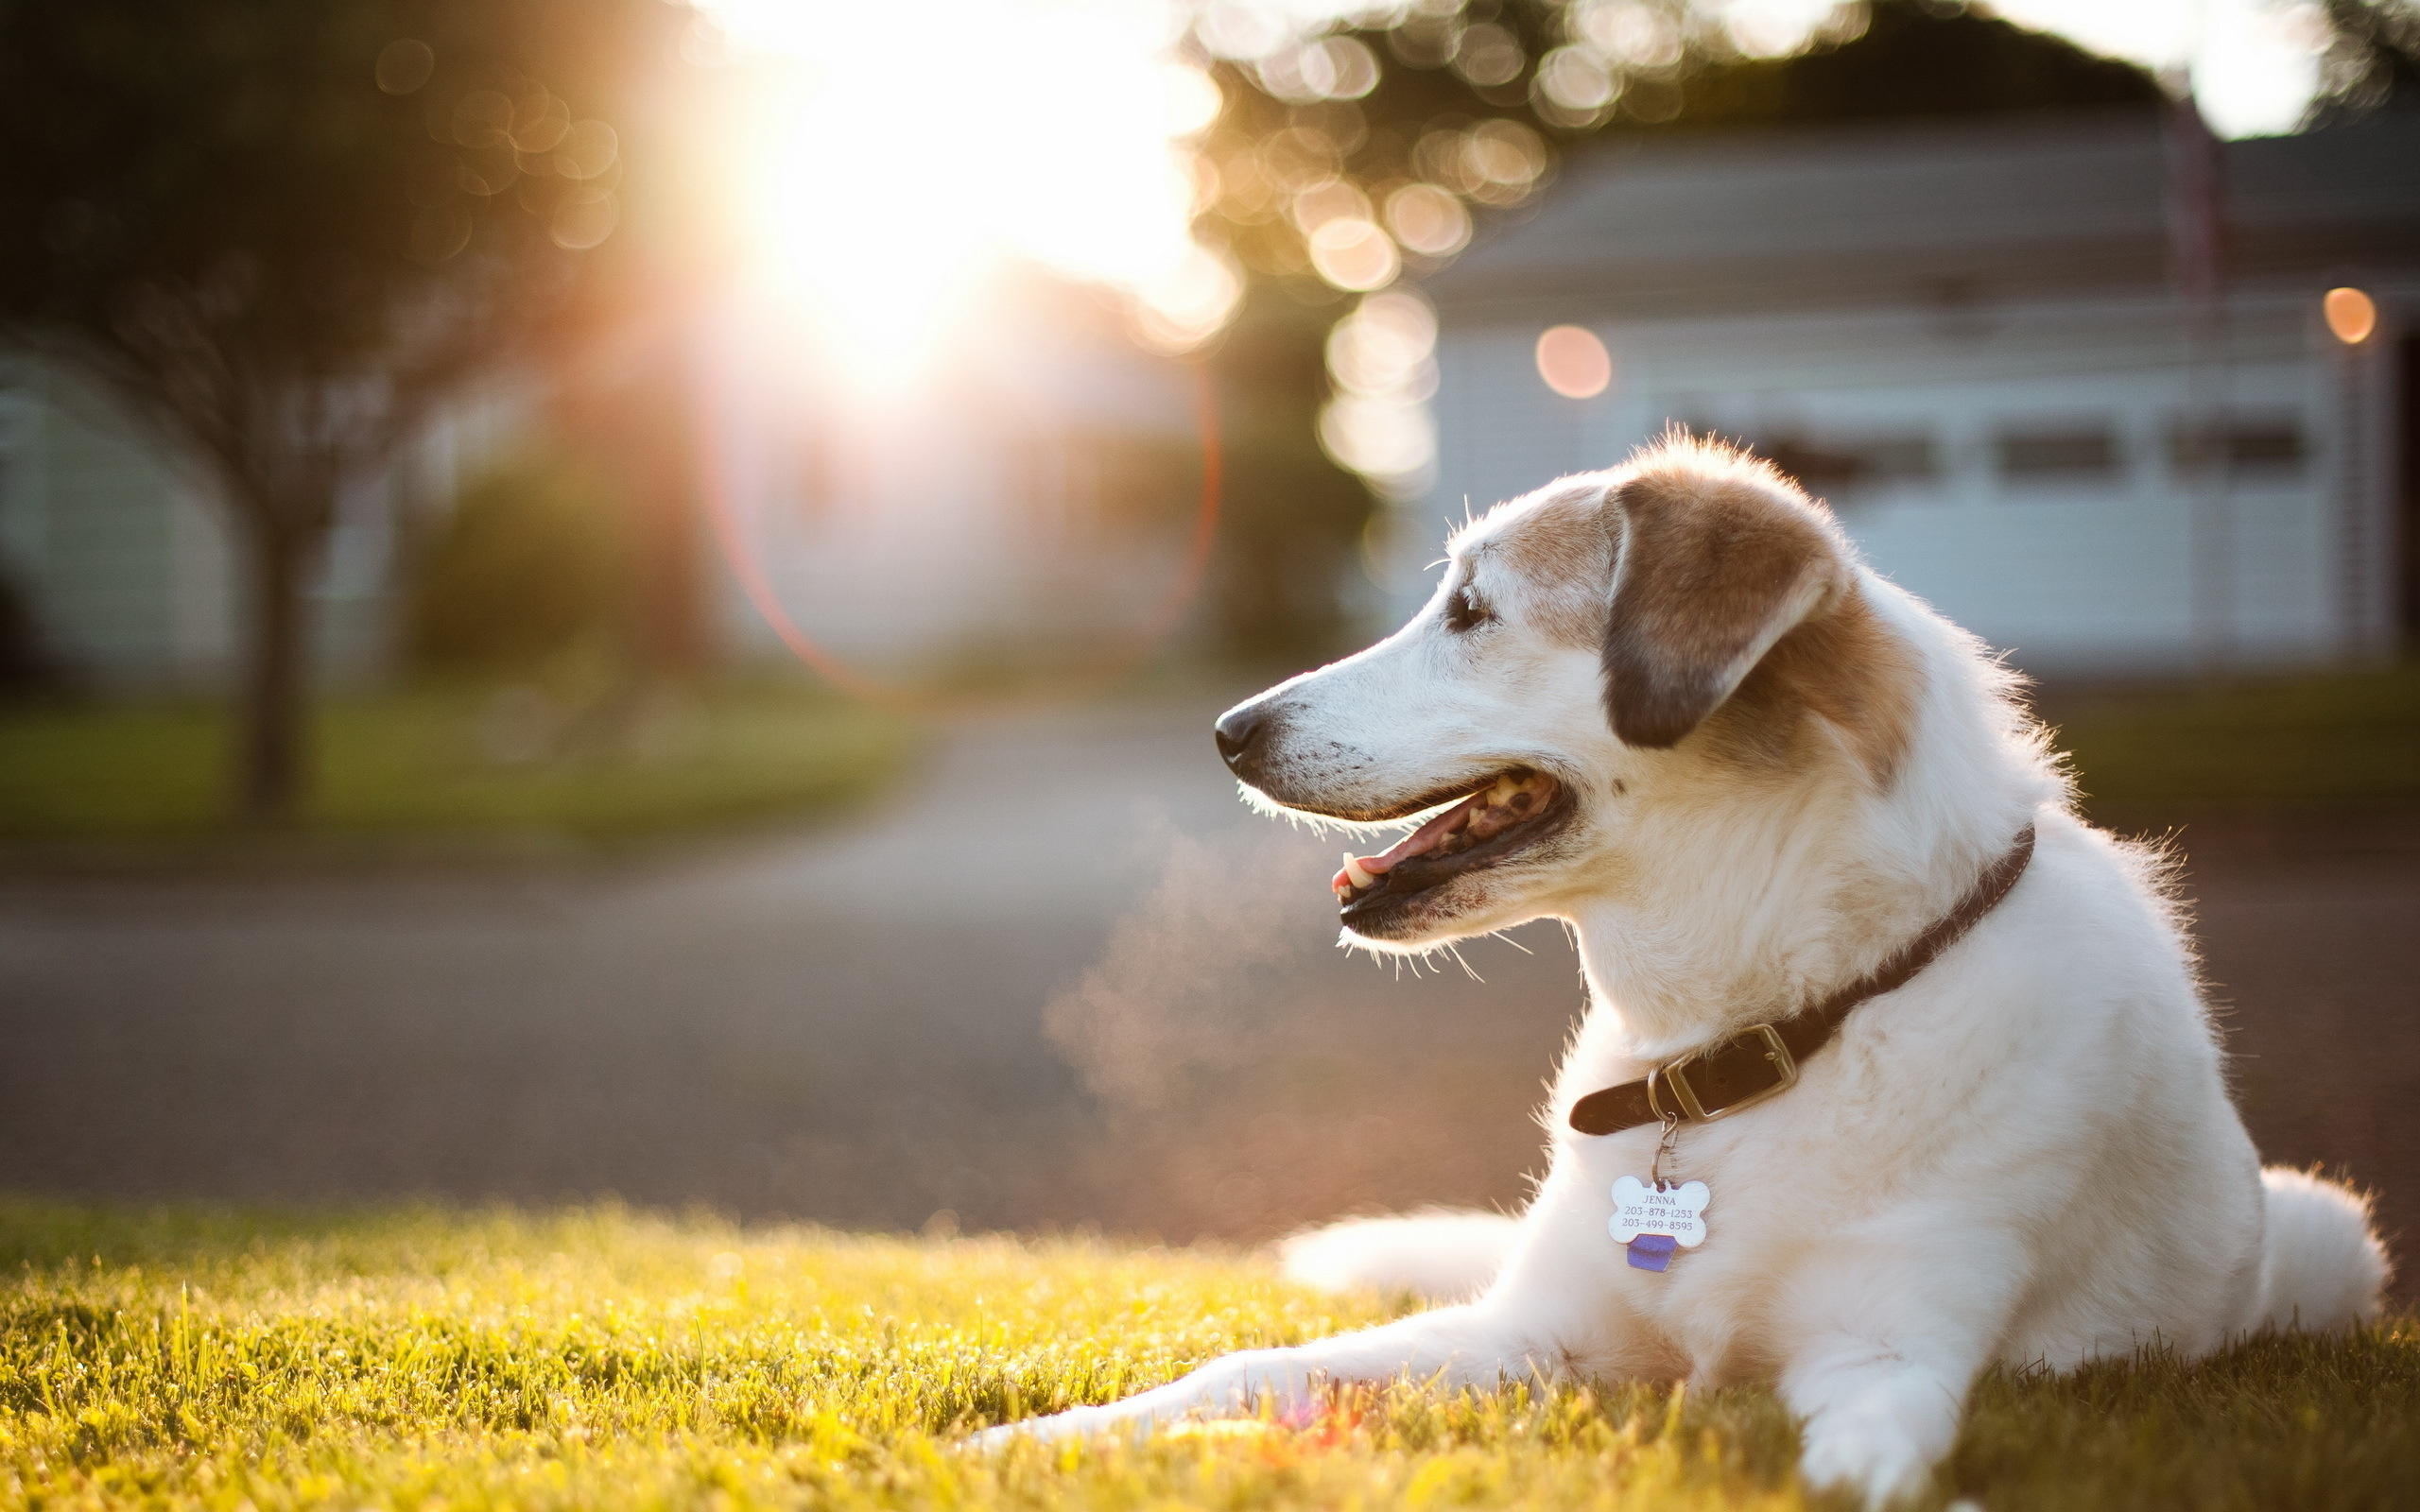 Dog Wallpaper Hd 47738 2560x1600px